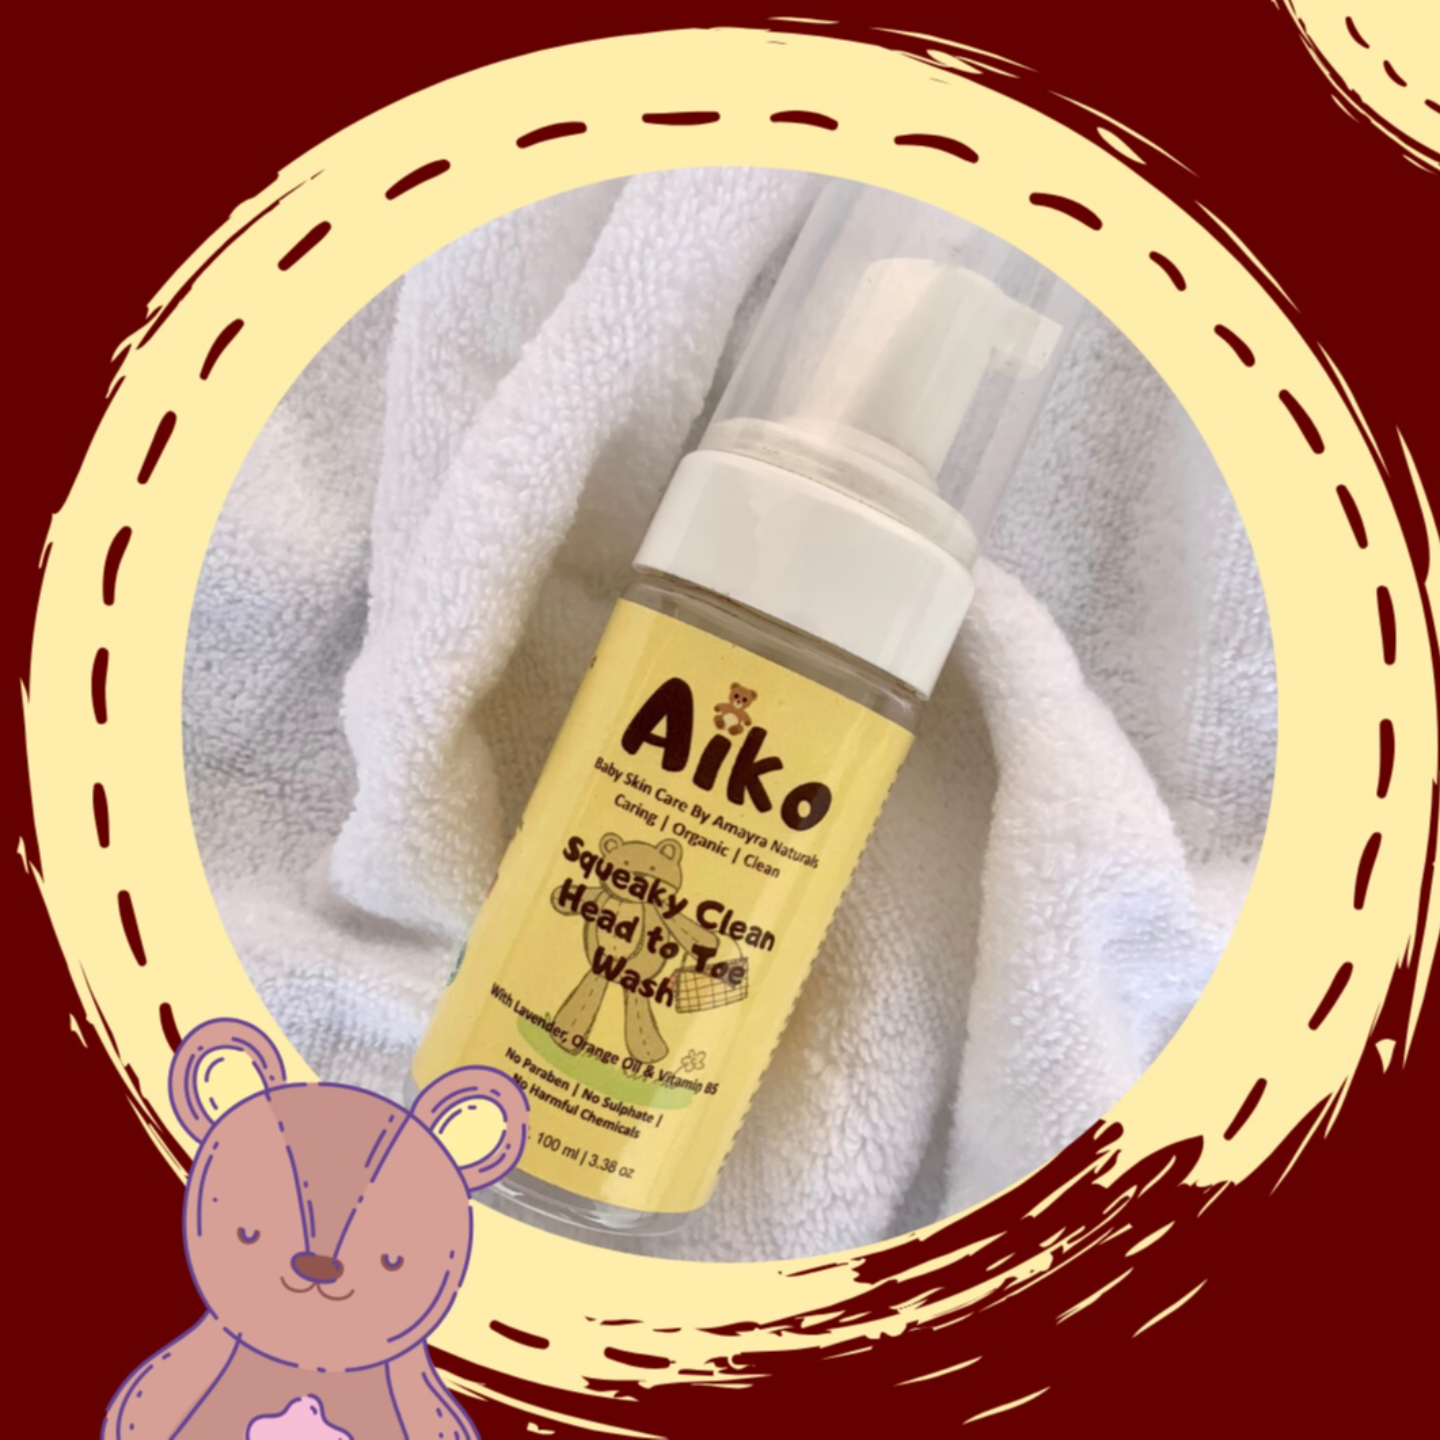 Amayra Naturals Aiko Squeaky Clean Head to Toe Wash